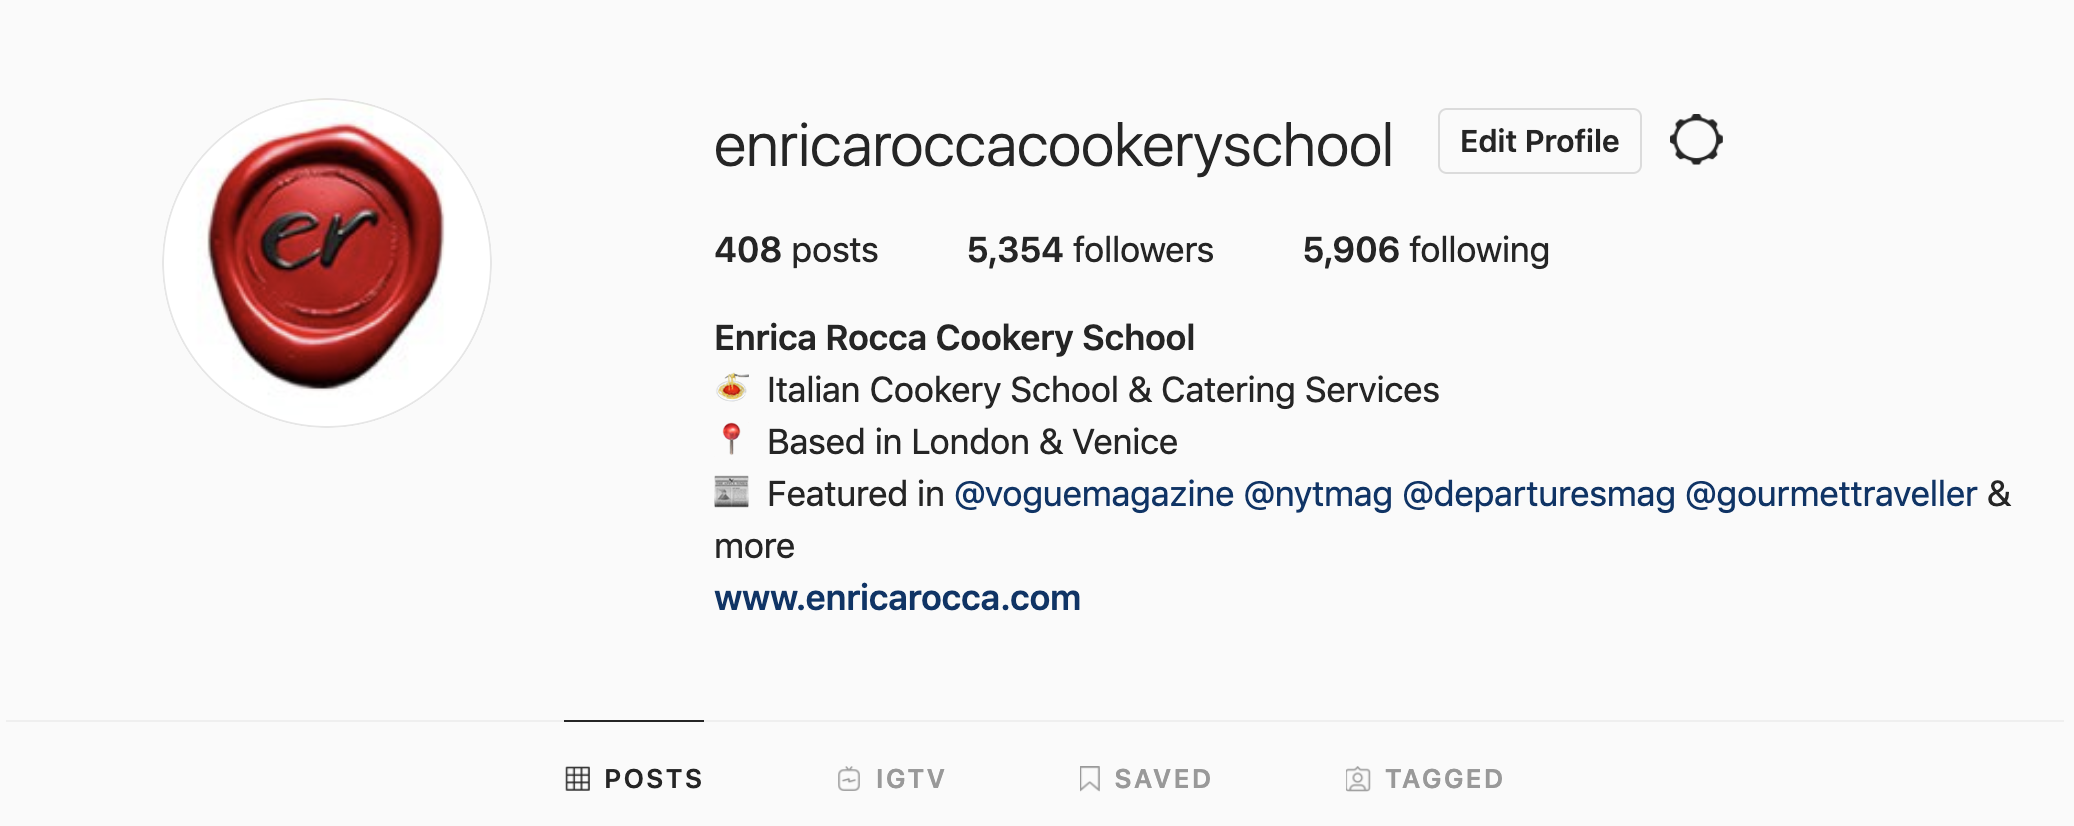 Enrica Rocca Cookery School - Sarah Pottharst Digital Marketing 19.png